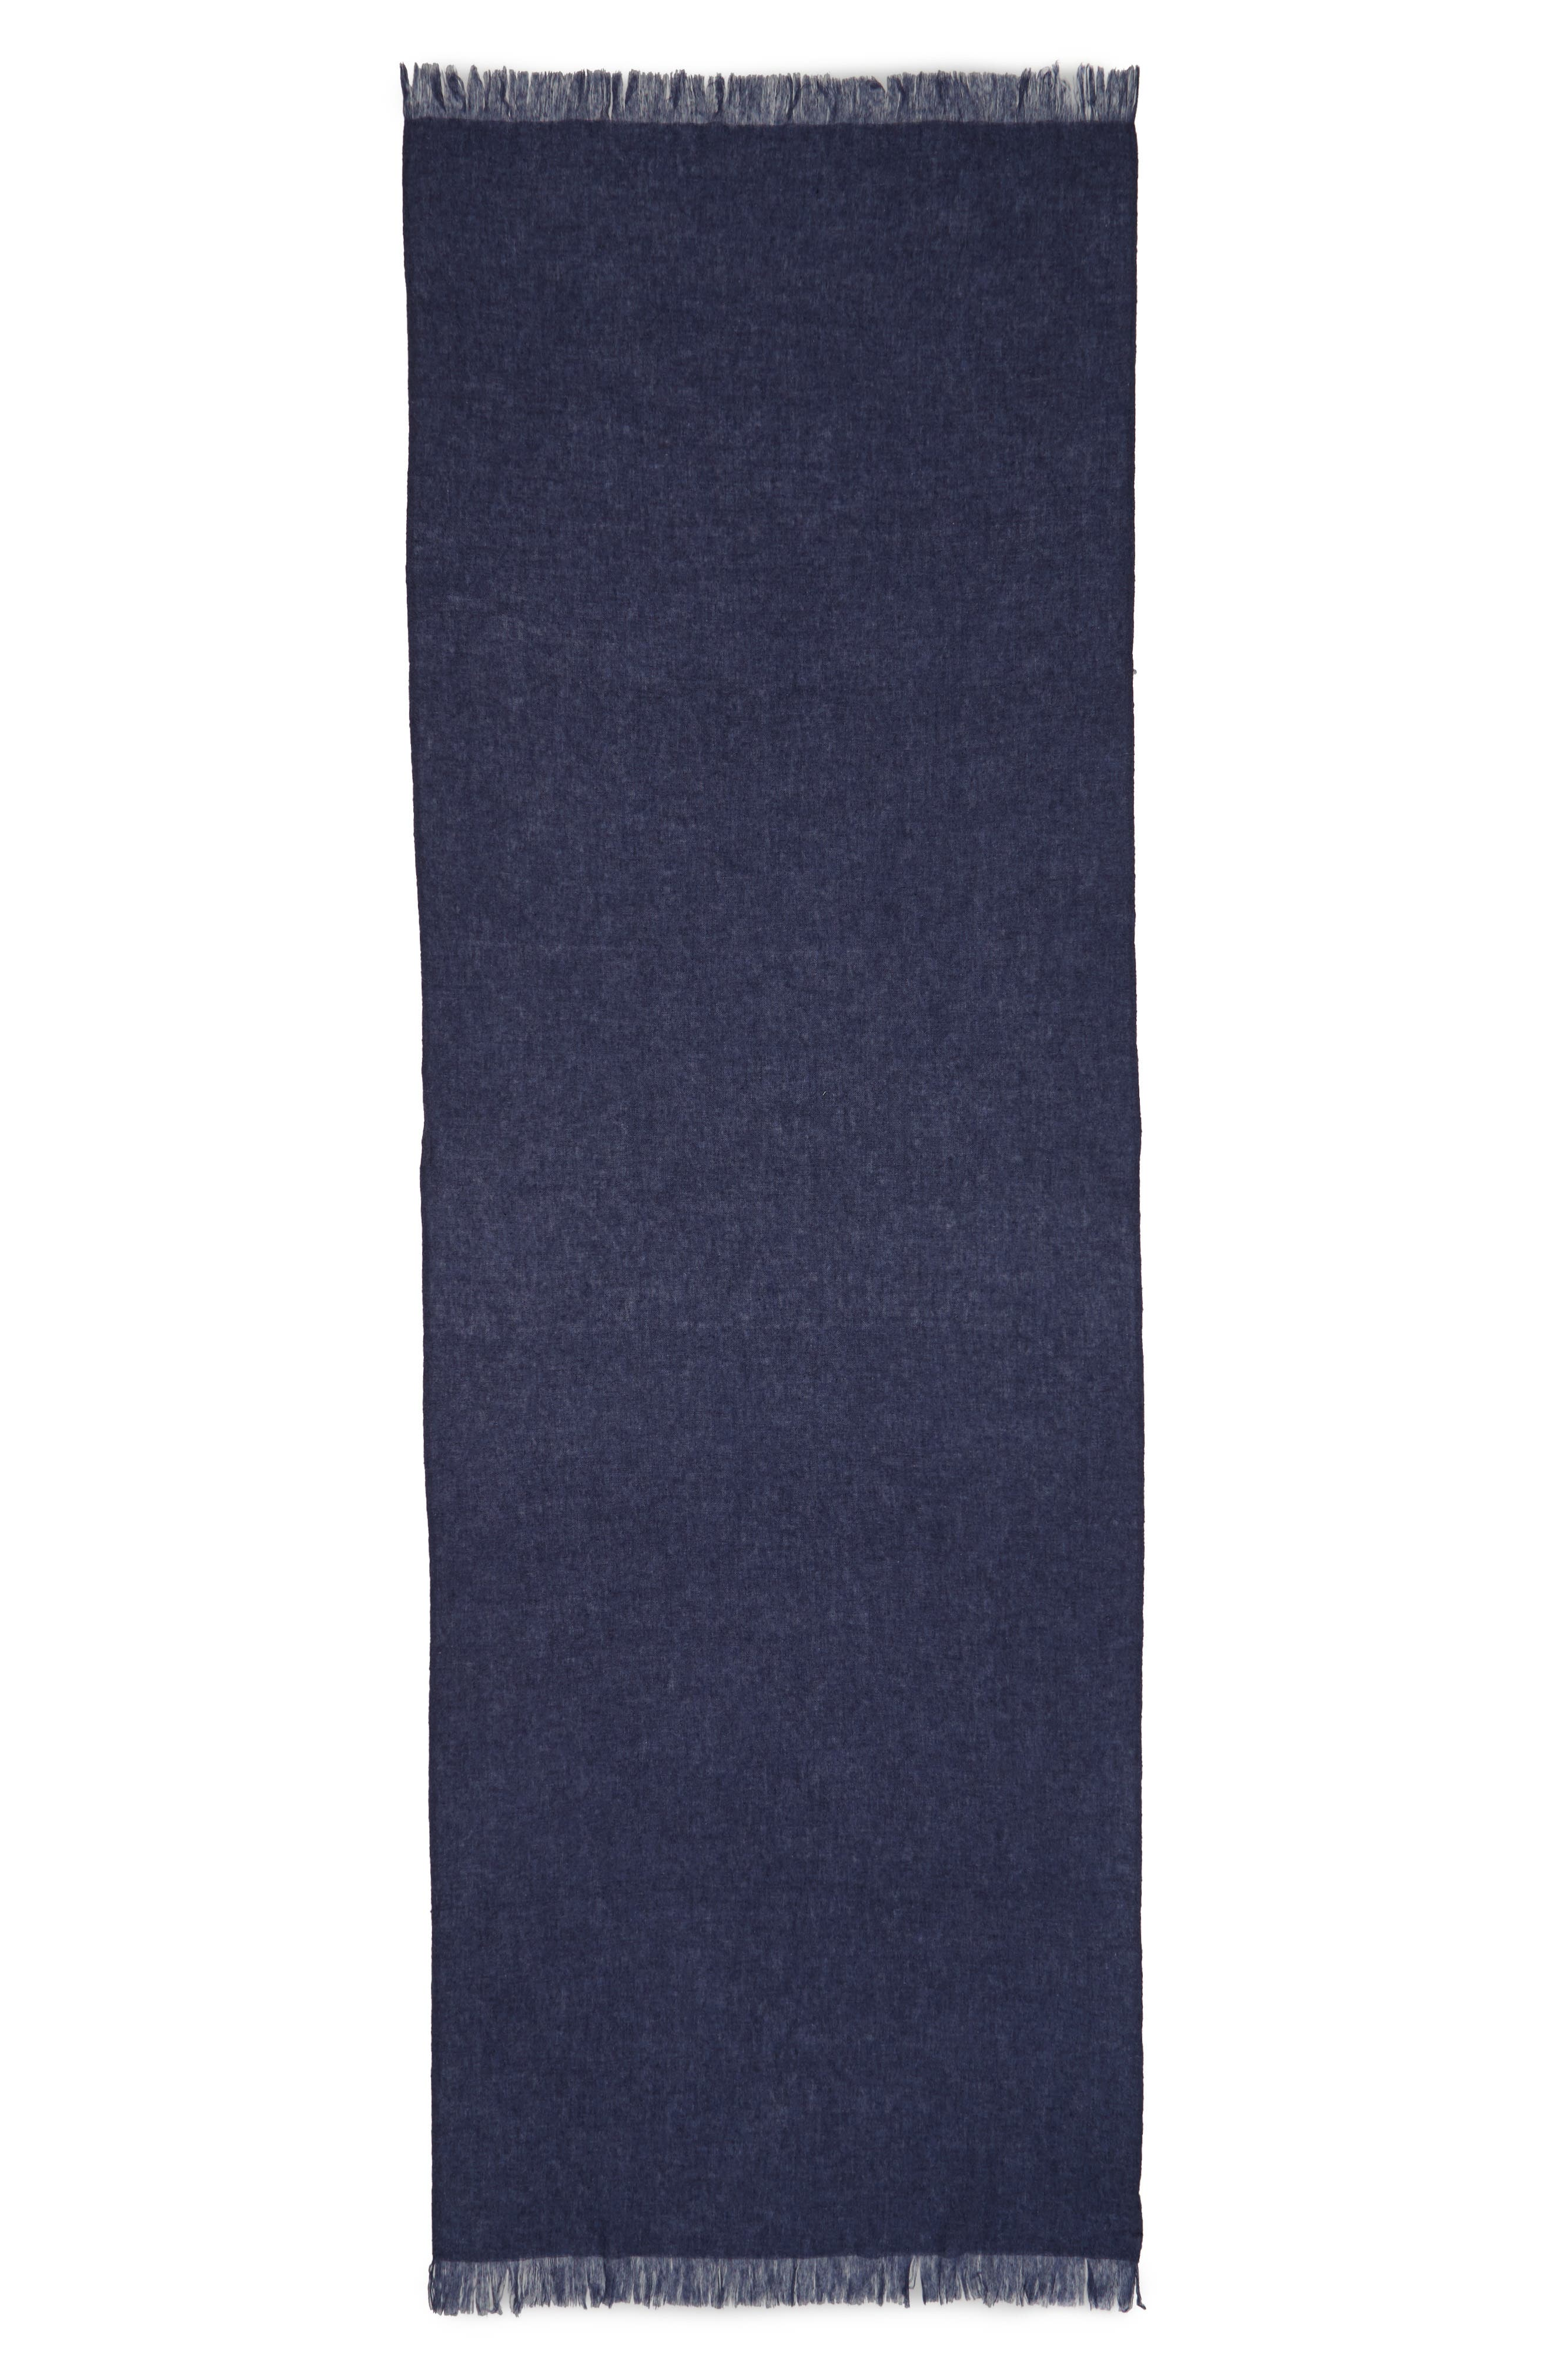 Caslon<sup>®</sup> Heathered Cashmere Gauze Scarf,                             Alternate thumbnail 20, color,